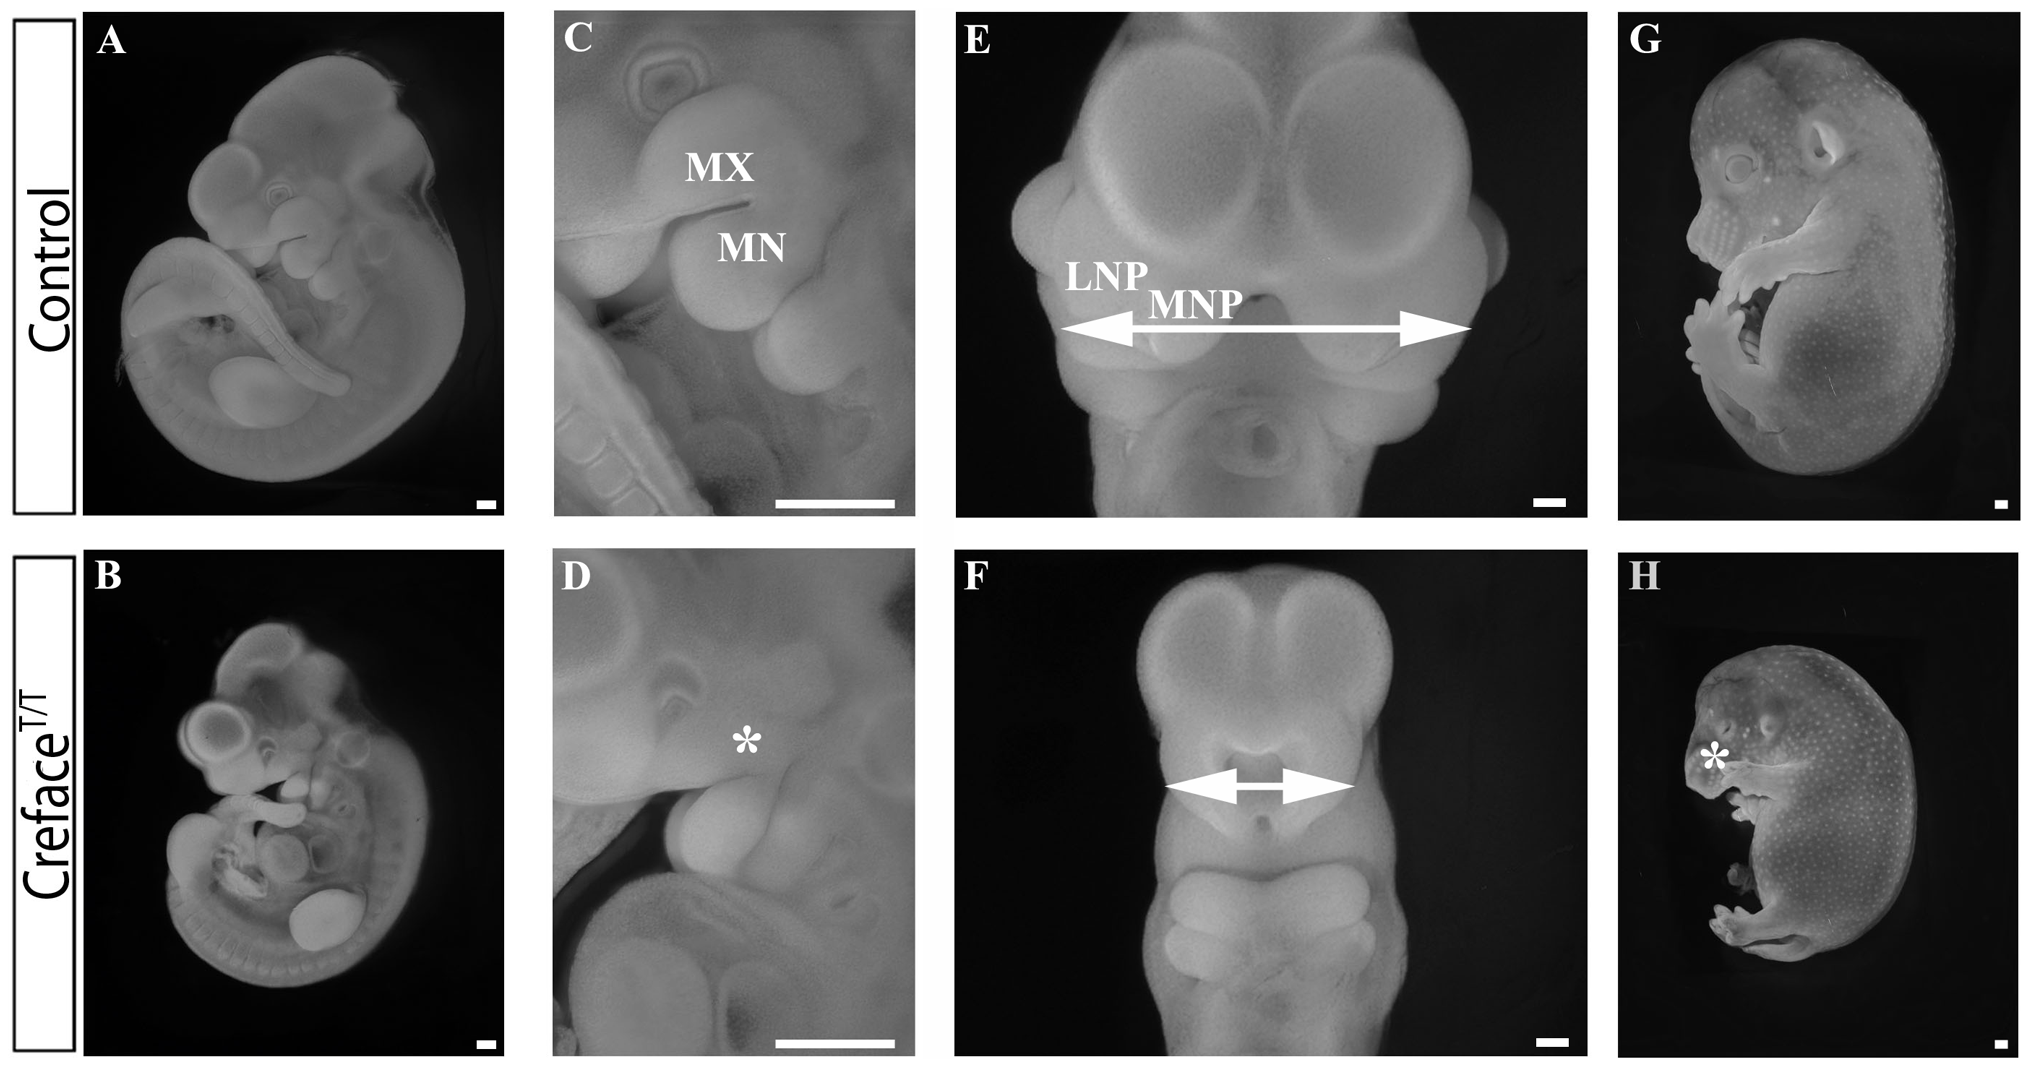 <i>Creface<sup>T/T</sup></i> embryos exhibit general facial prominence hypoplasia.